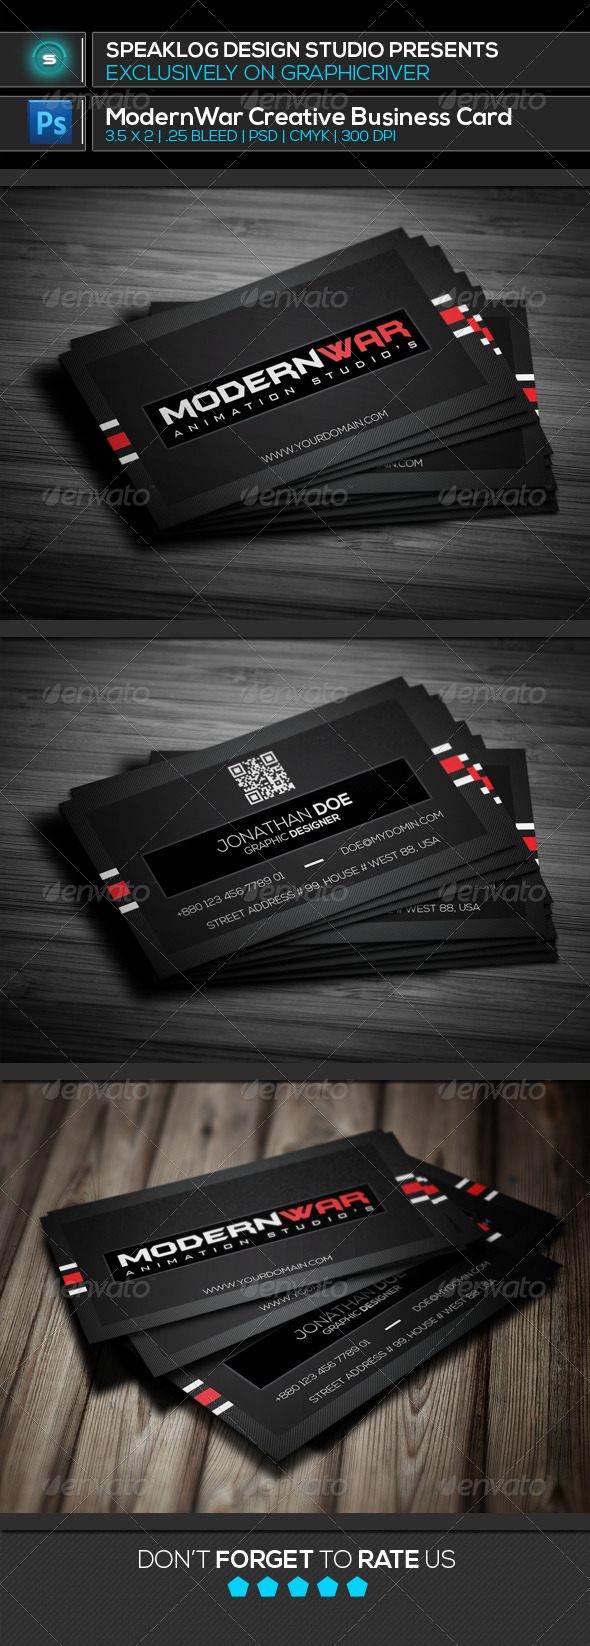 GraphicRiver Modernwar Creative Business Card 8012668